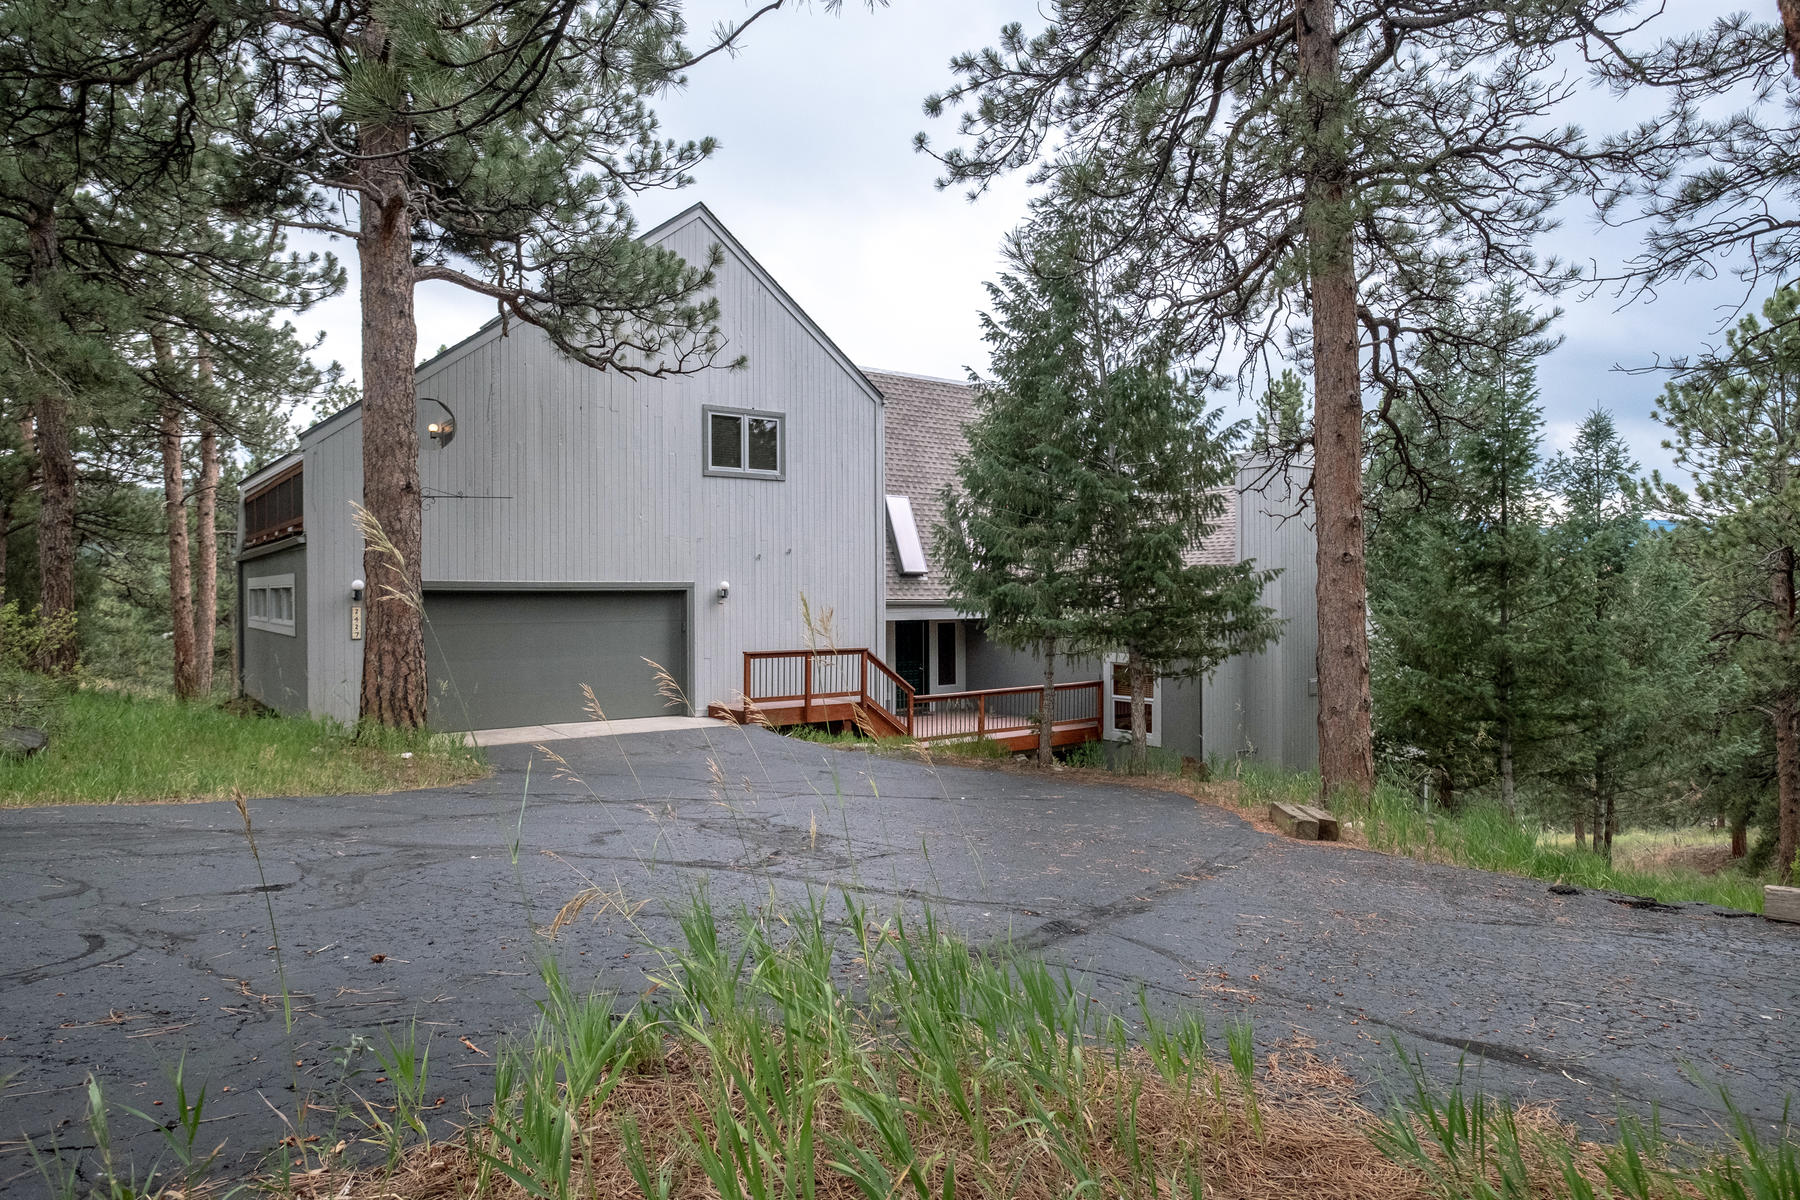 Single Family Homes for Sale at Tranquility Surrounded by Nature, Views, Privacy, Quietness 2427 Daisy Lane Golden, Colorado 80401 United States